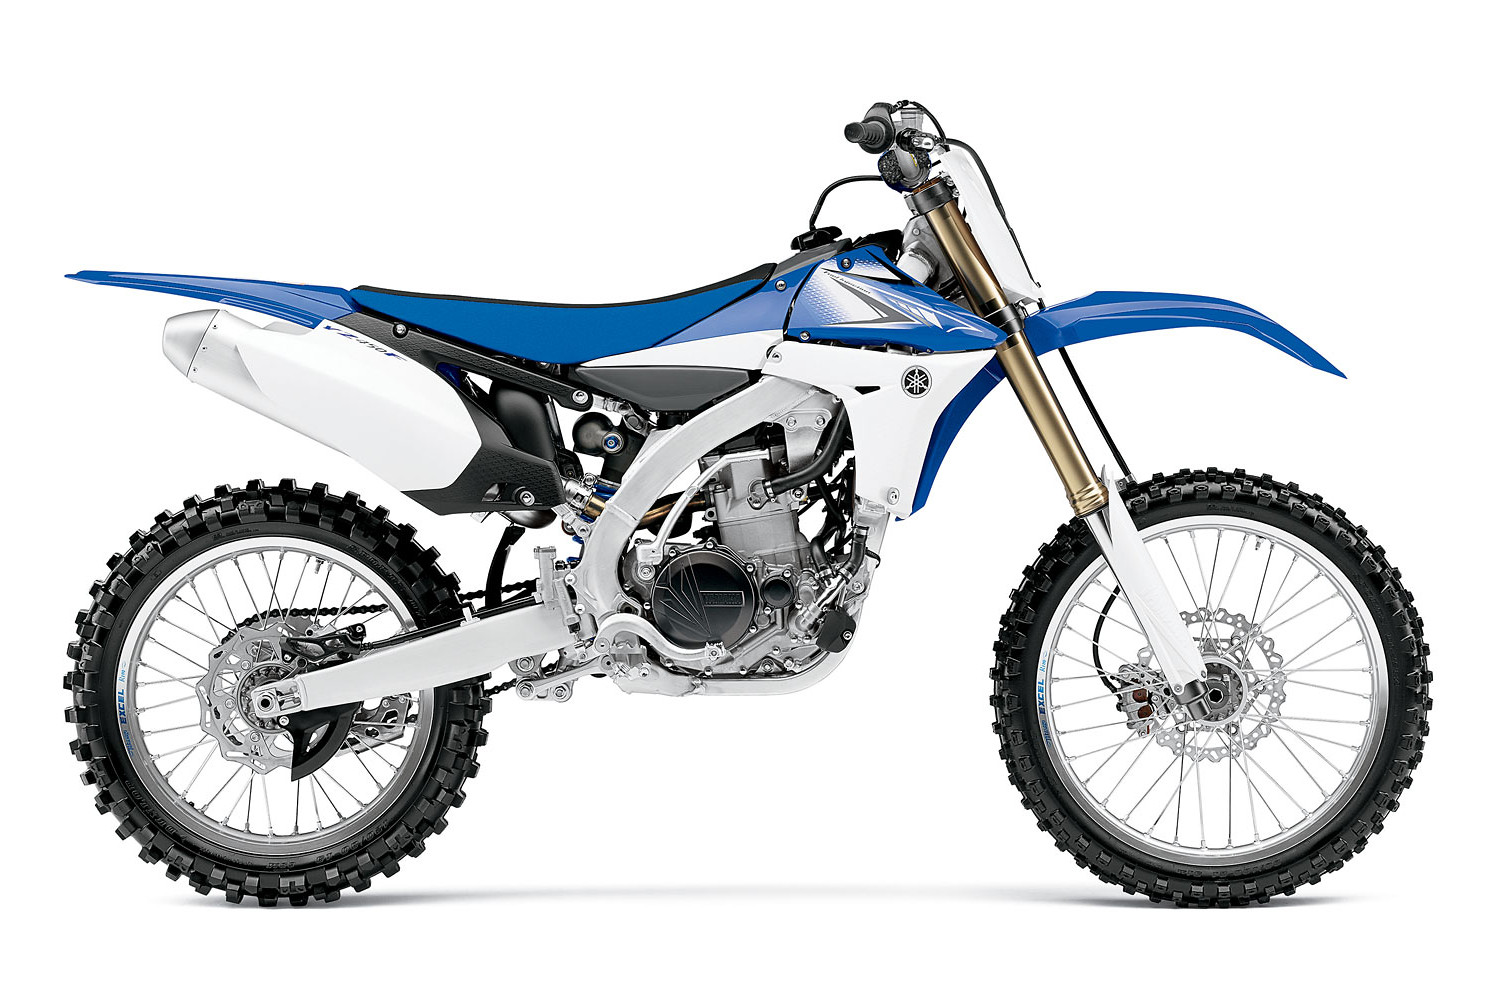 2011 yamaha yz450f reviews comparisons specs for New yamaha 450